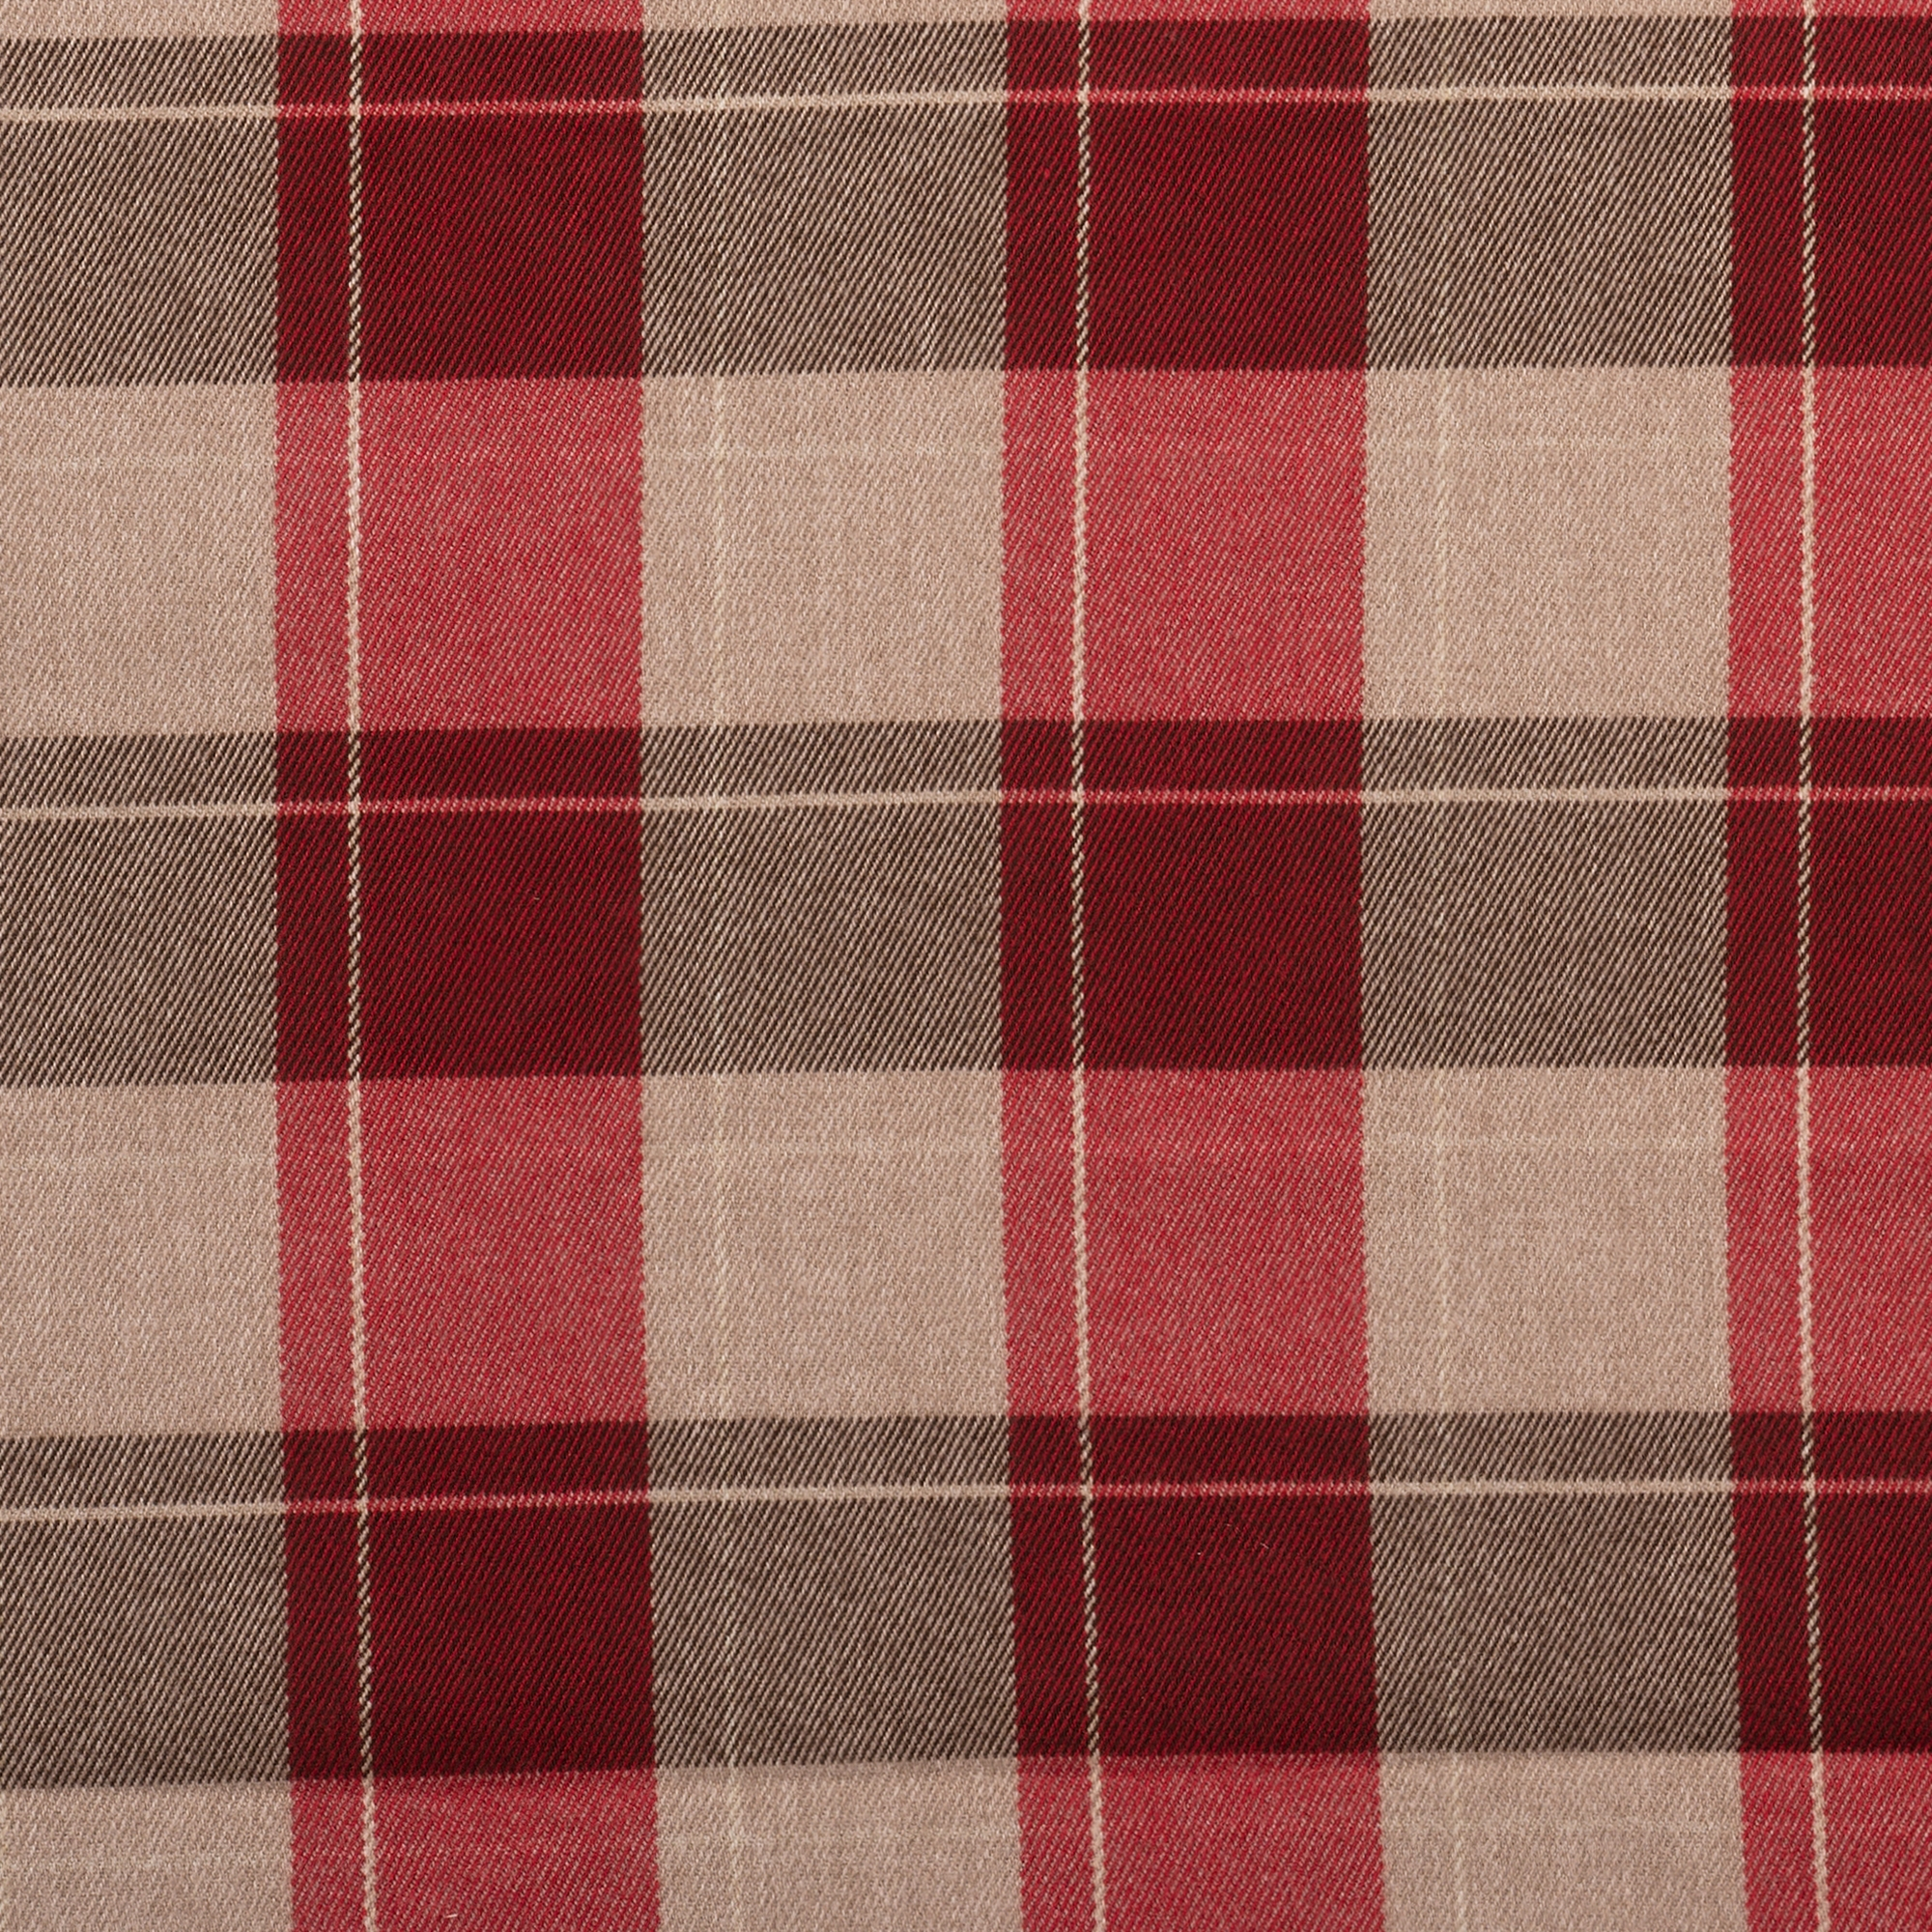 Fellcroft Cranberry Roman Blind Plaid Check Roman Blinds Inside Plaid Roman Blinds (Image 4 of 15)